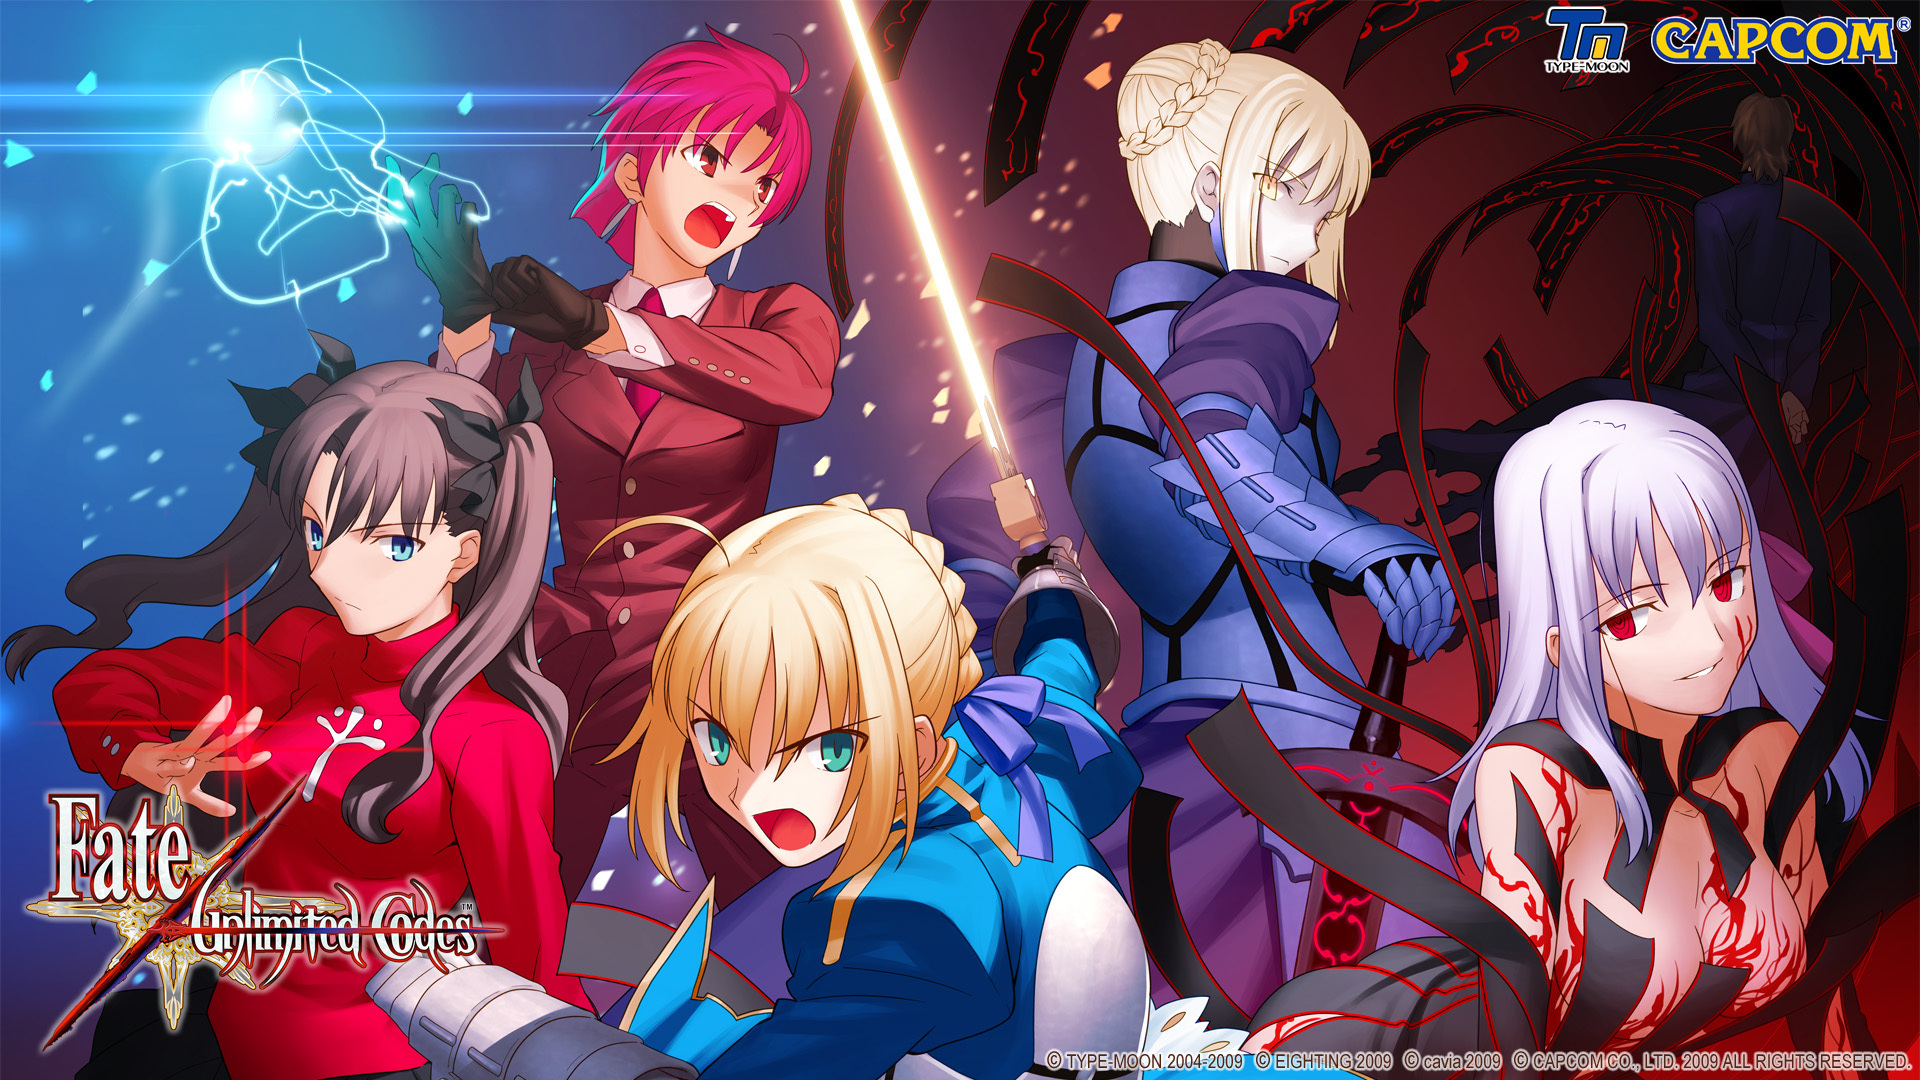 fate stay night images screens and art hd wallpaper and background